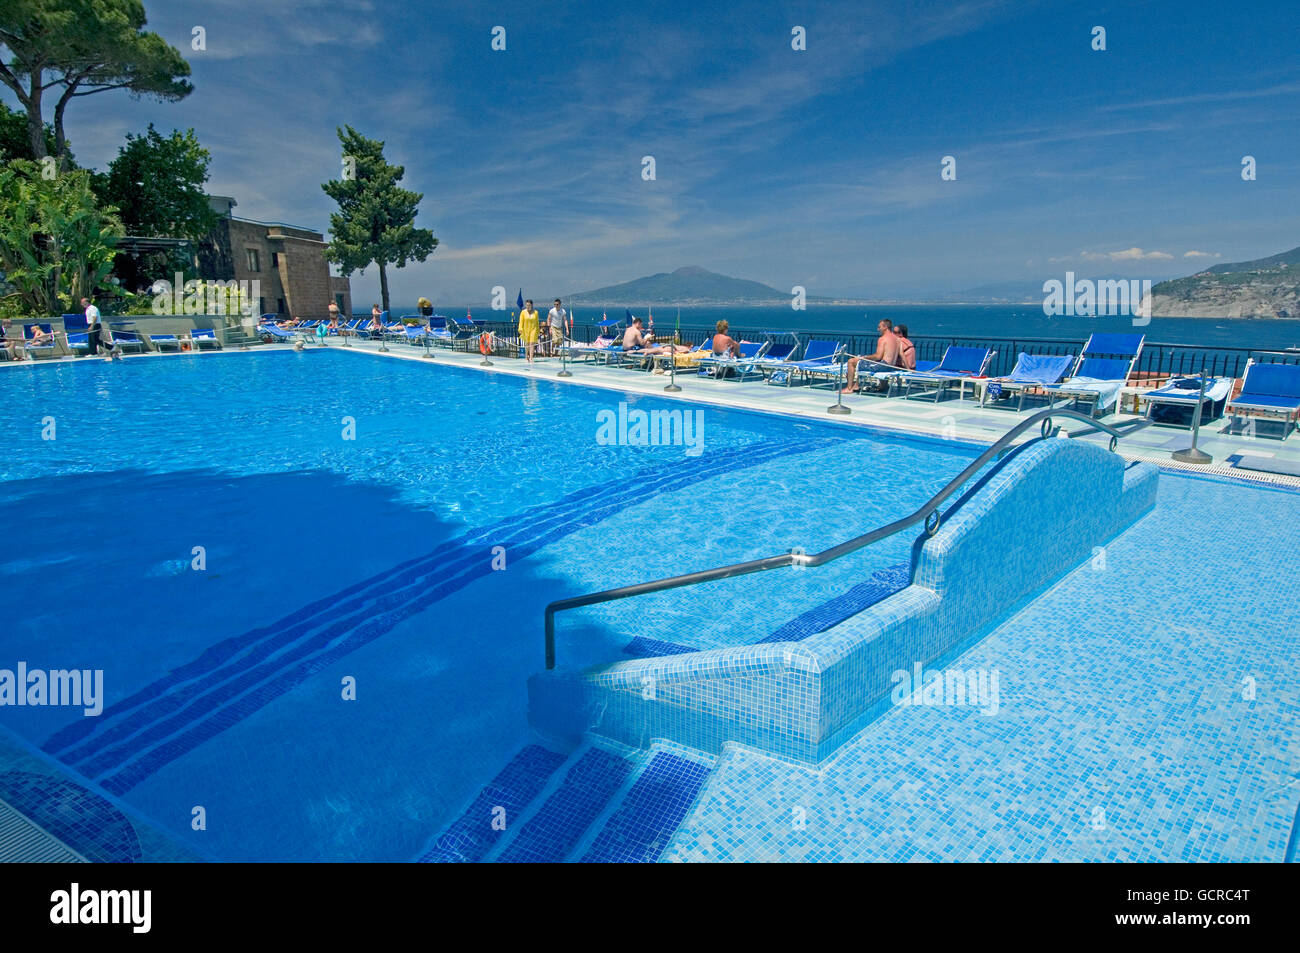 A Swimming Pool At The Bristol Hotel In Sorrento Near Naples Italy Stock Photo 111152520 Alamy